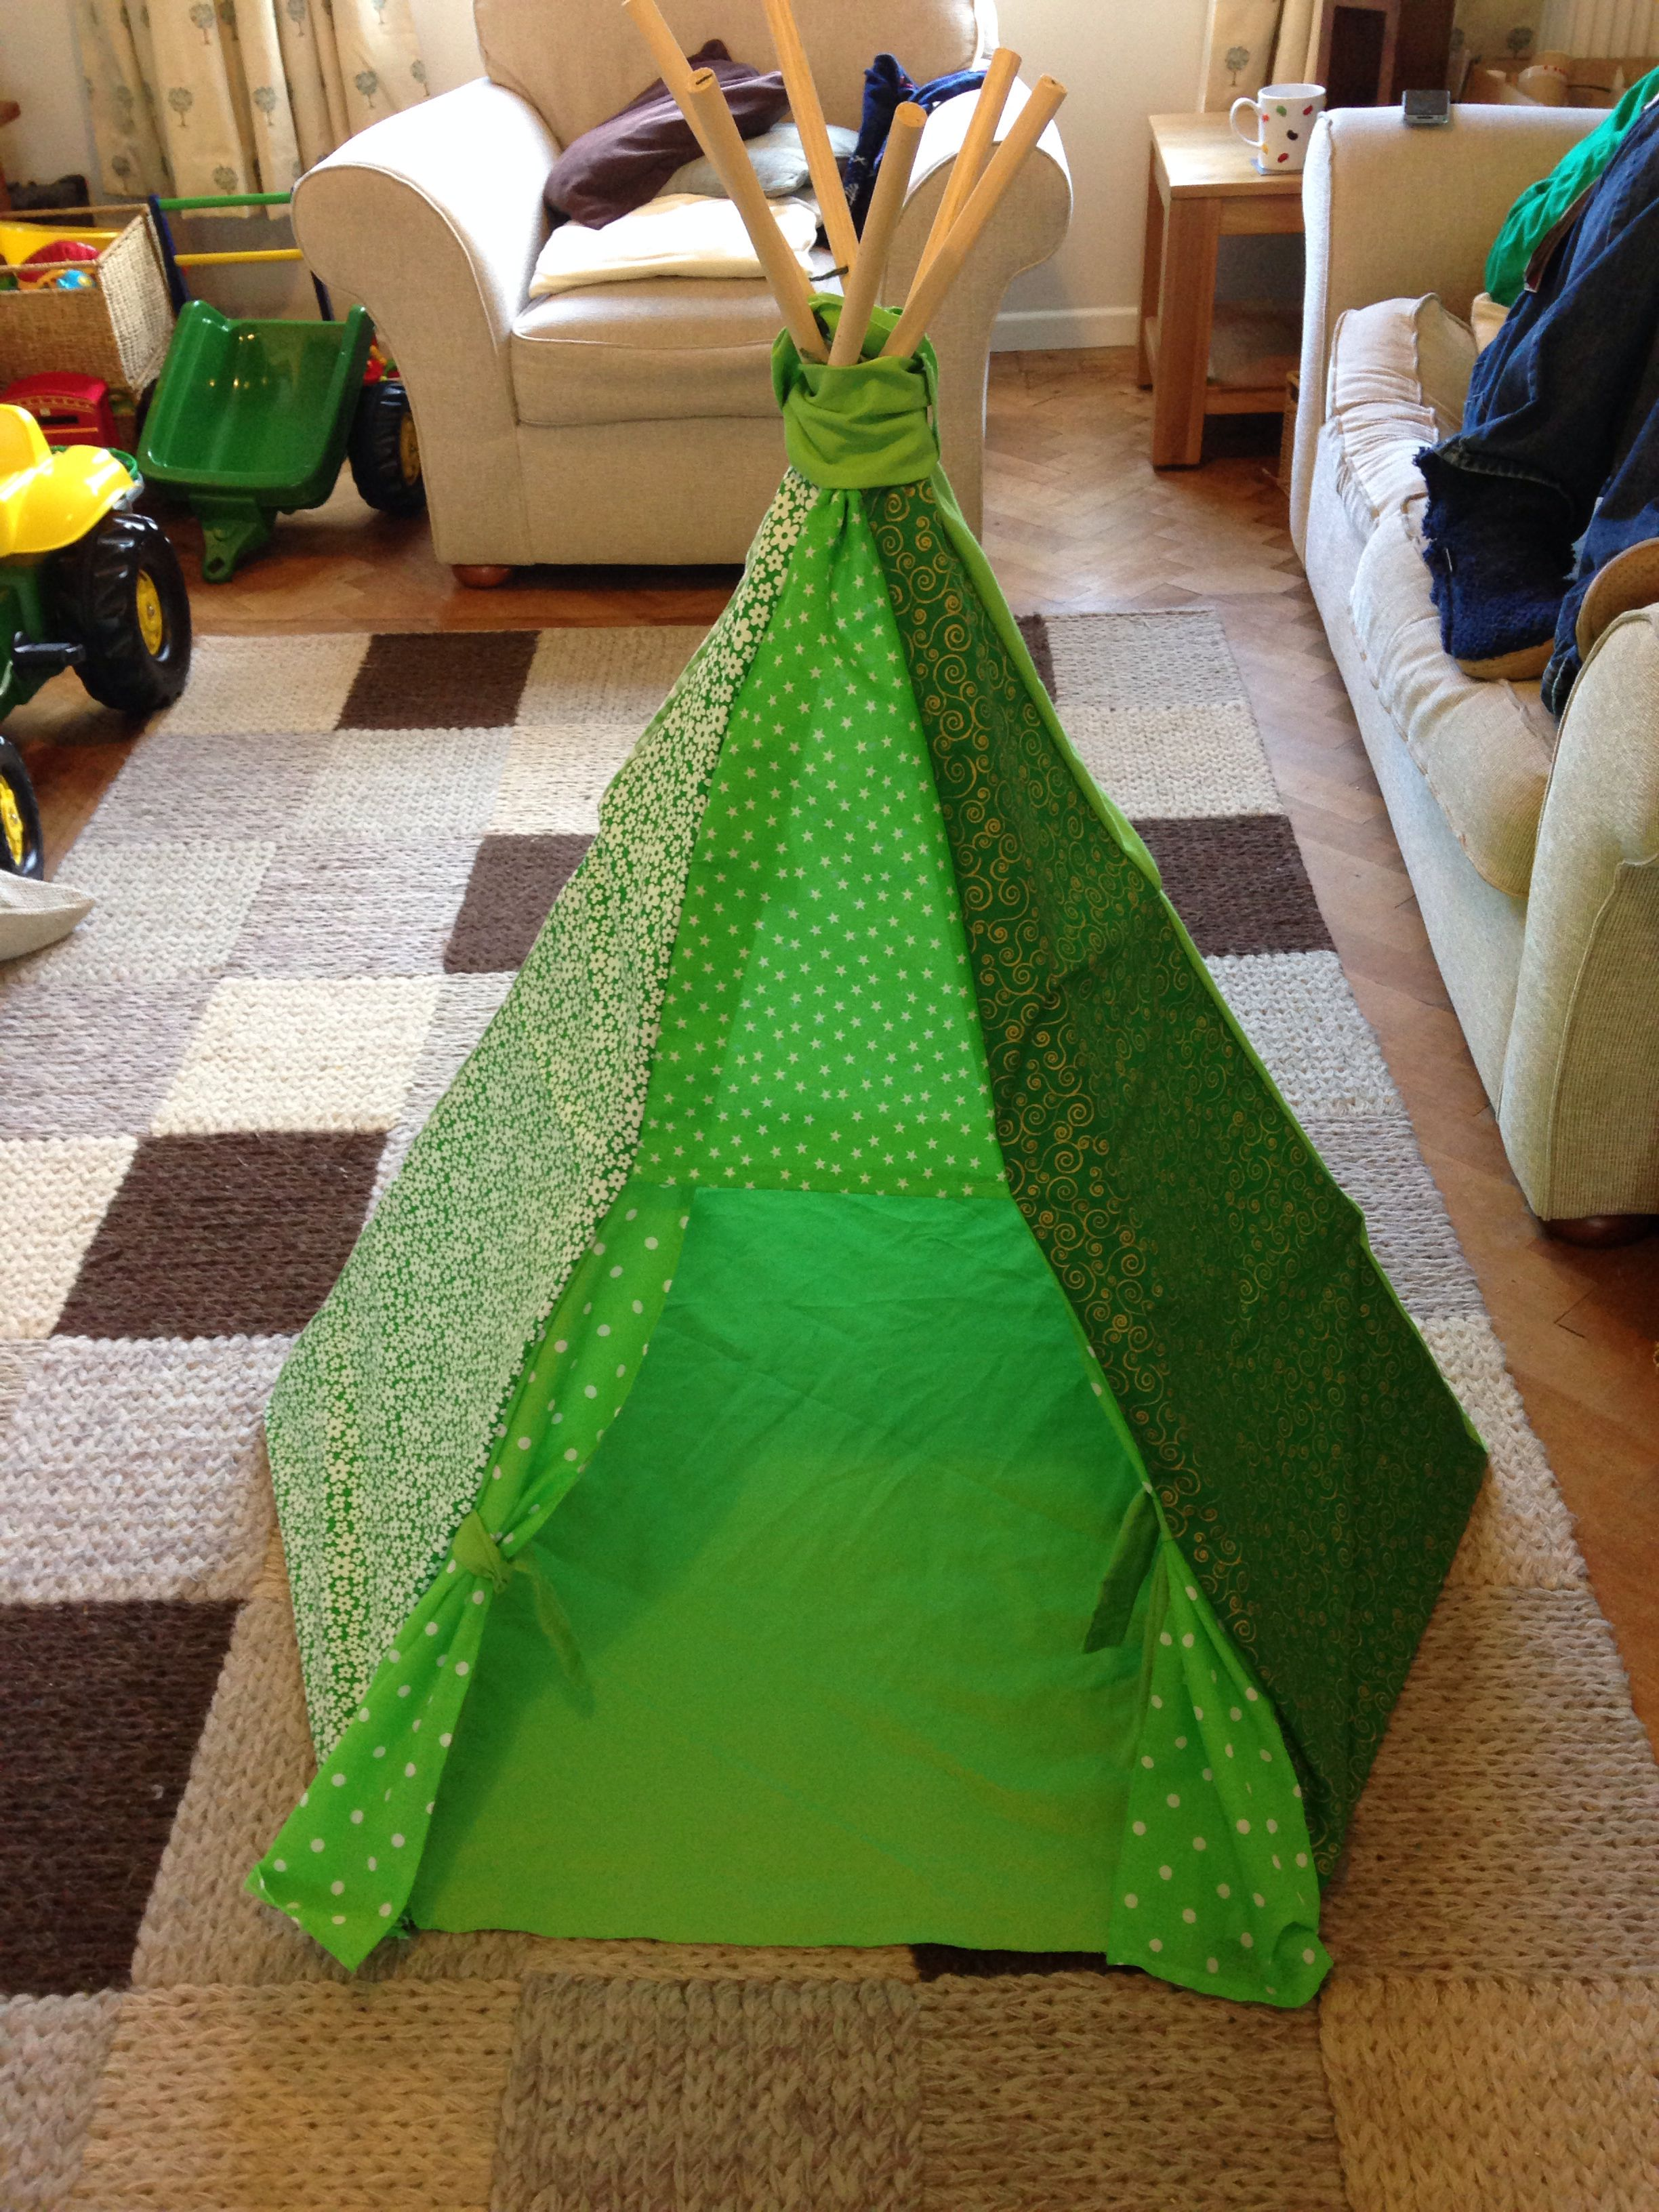 My teepee version 1 for emerald city - props for Wizard of Oz shoot - Wizard Of Oz Halloween Decorations